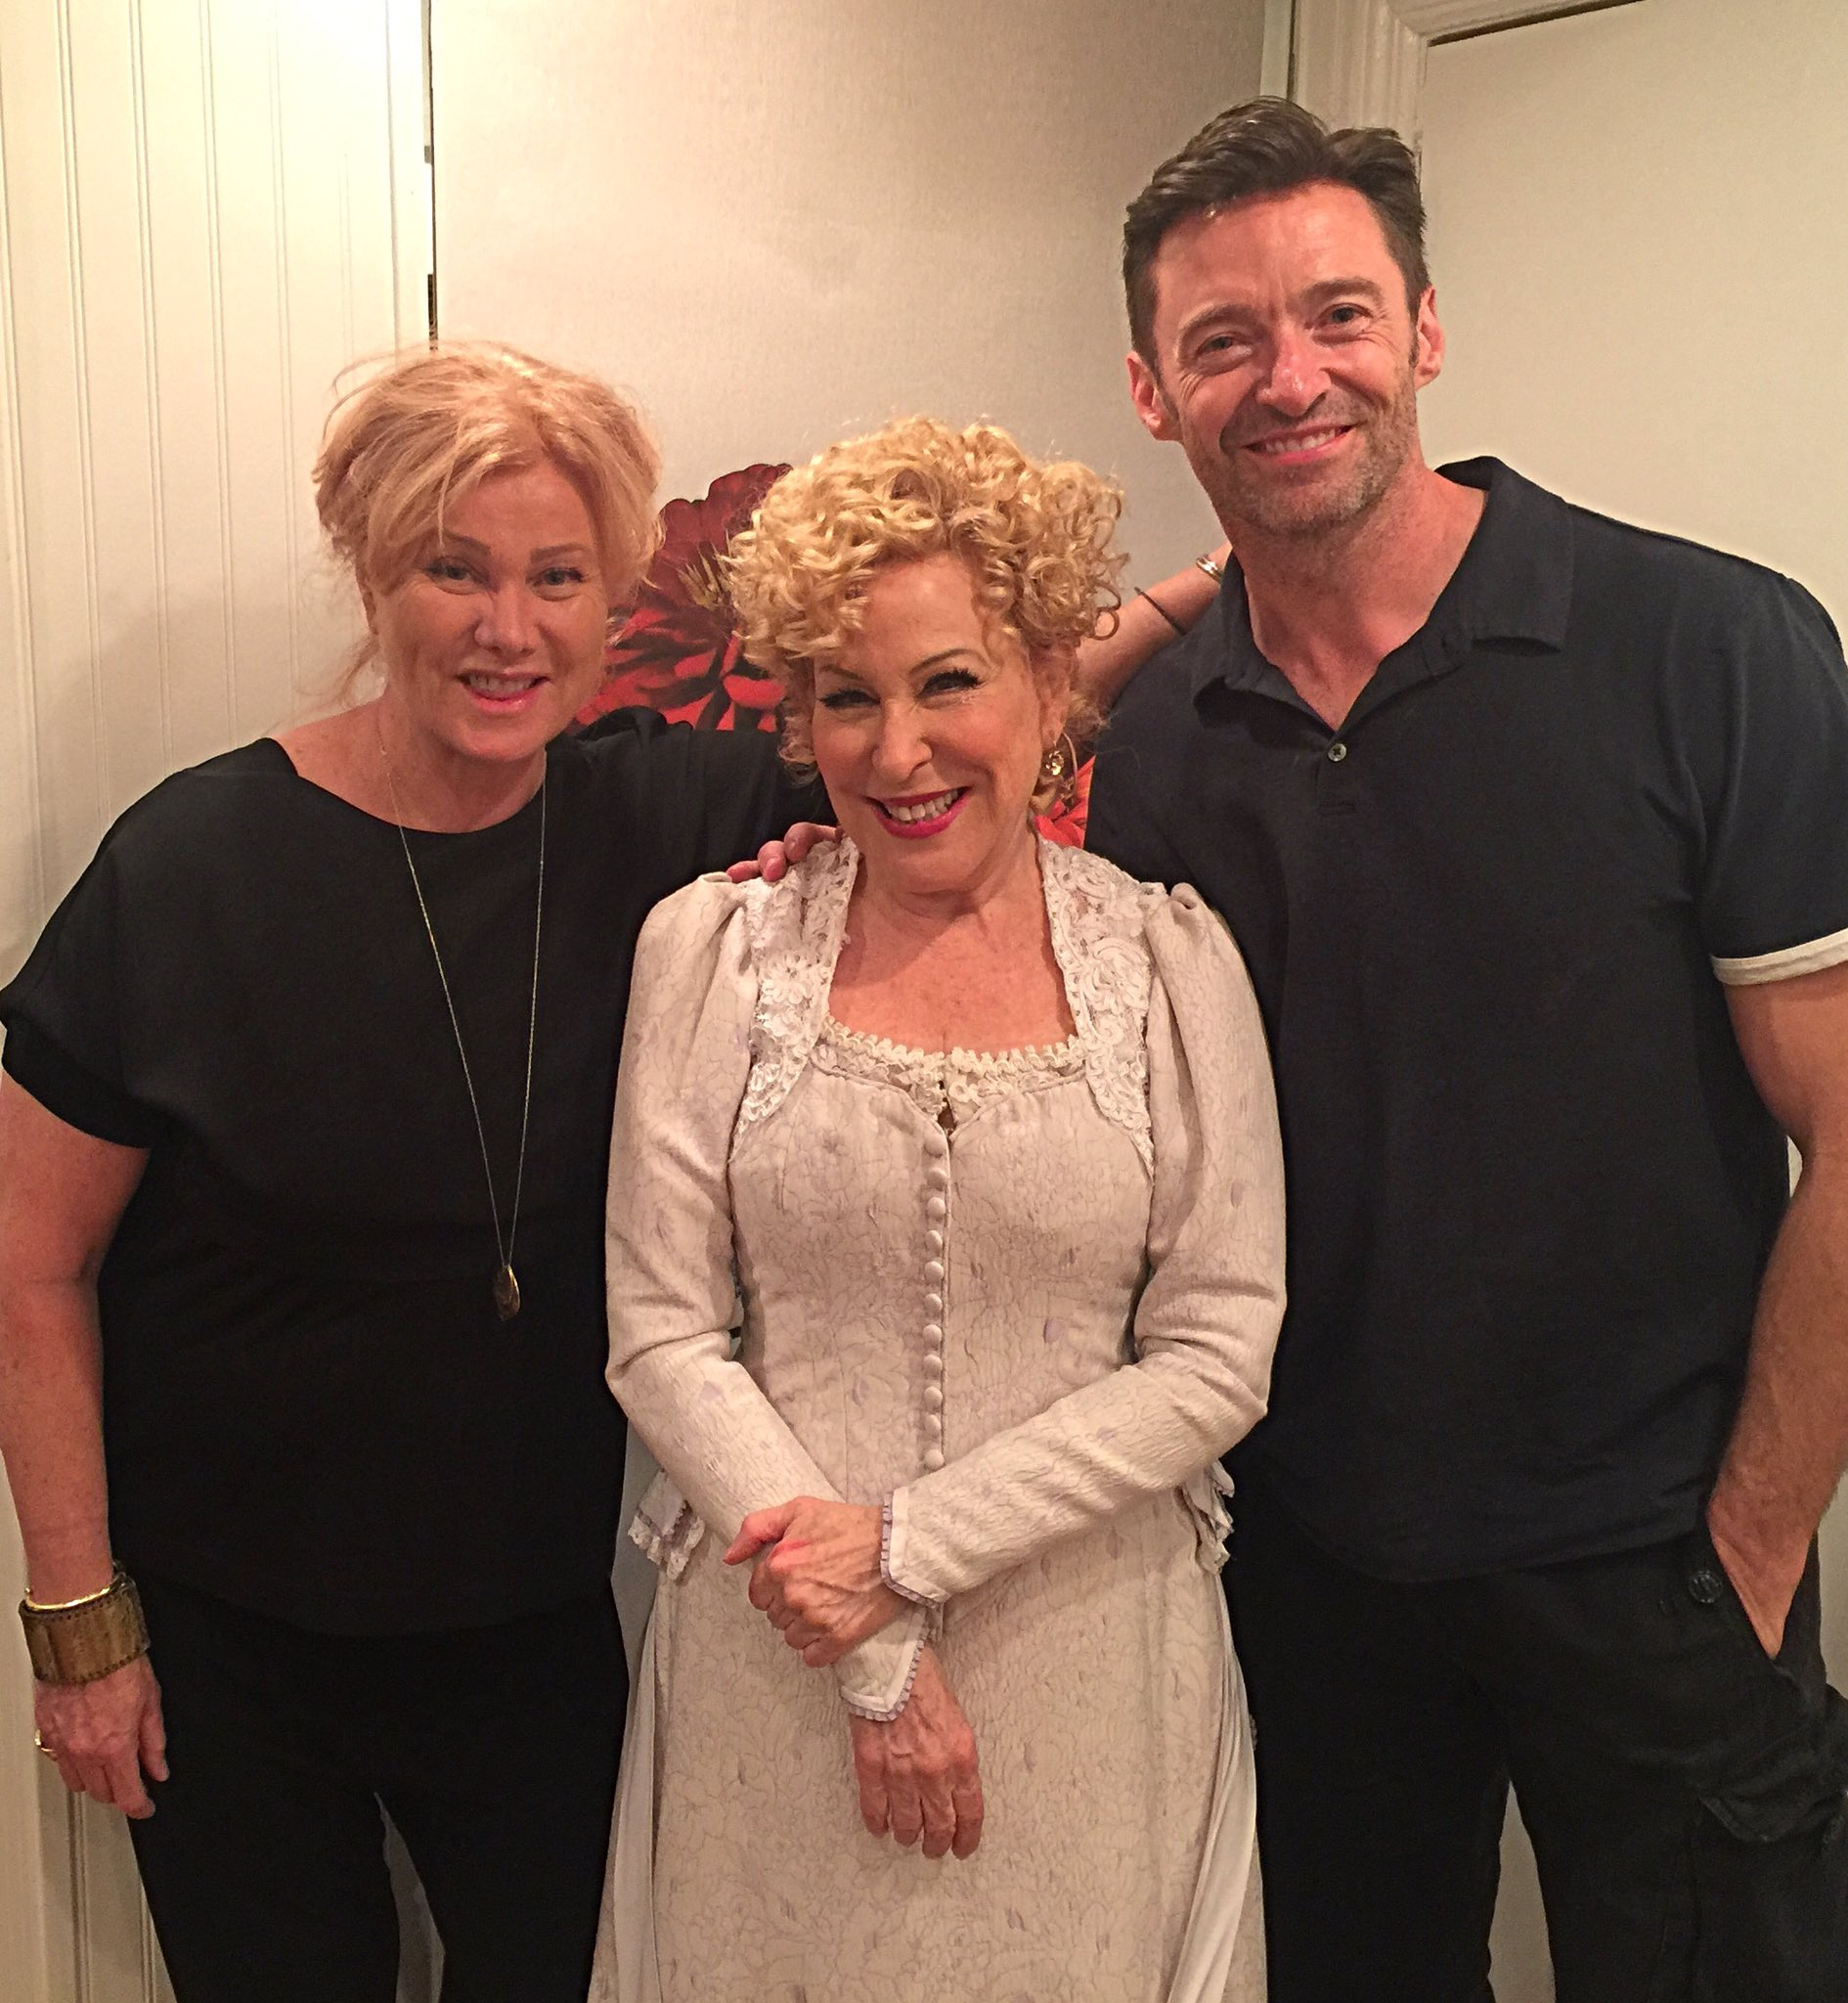 An icon in action! @BetteMidler @HelloDollyBway @Deborra_lee https://t.co/Y7WZ8ieAzX